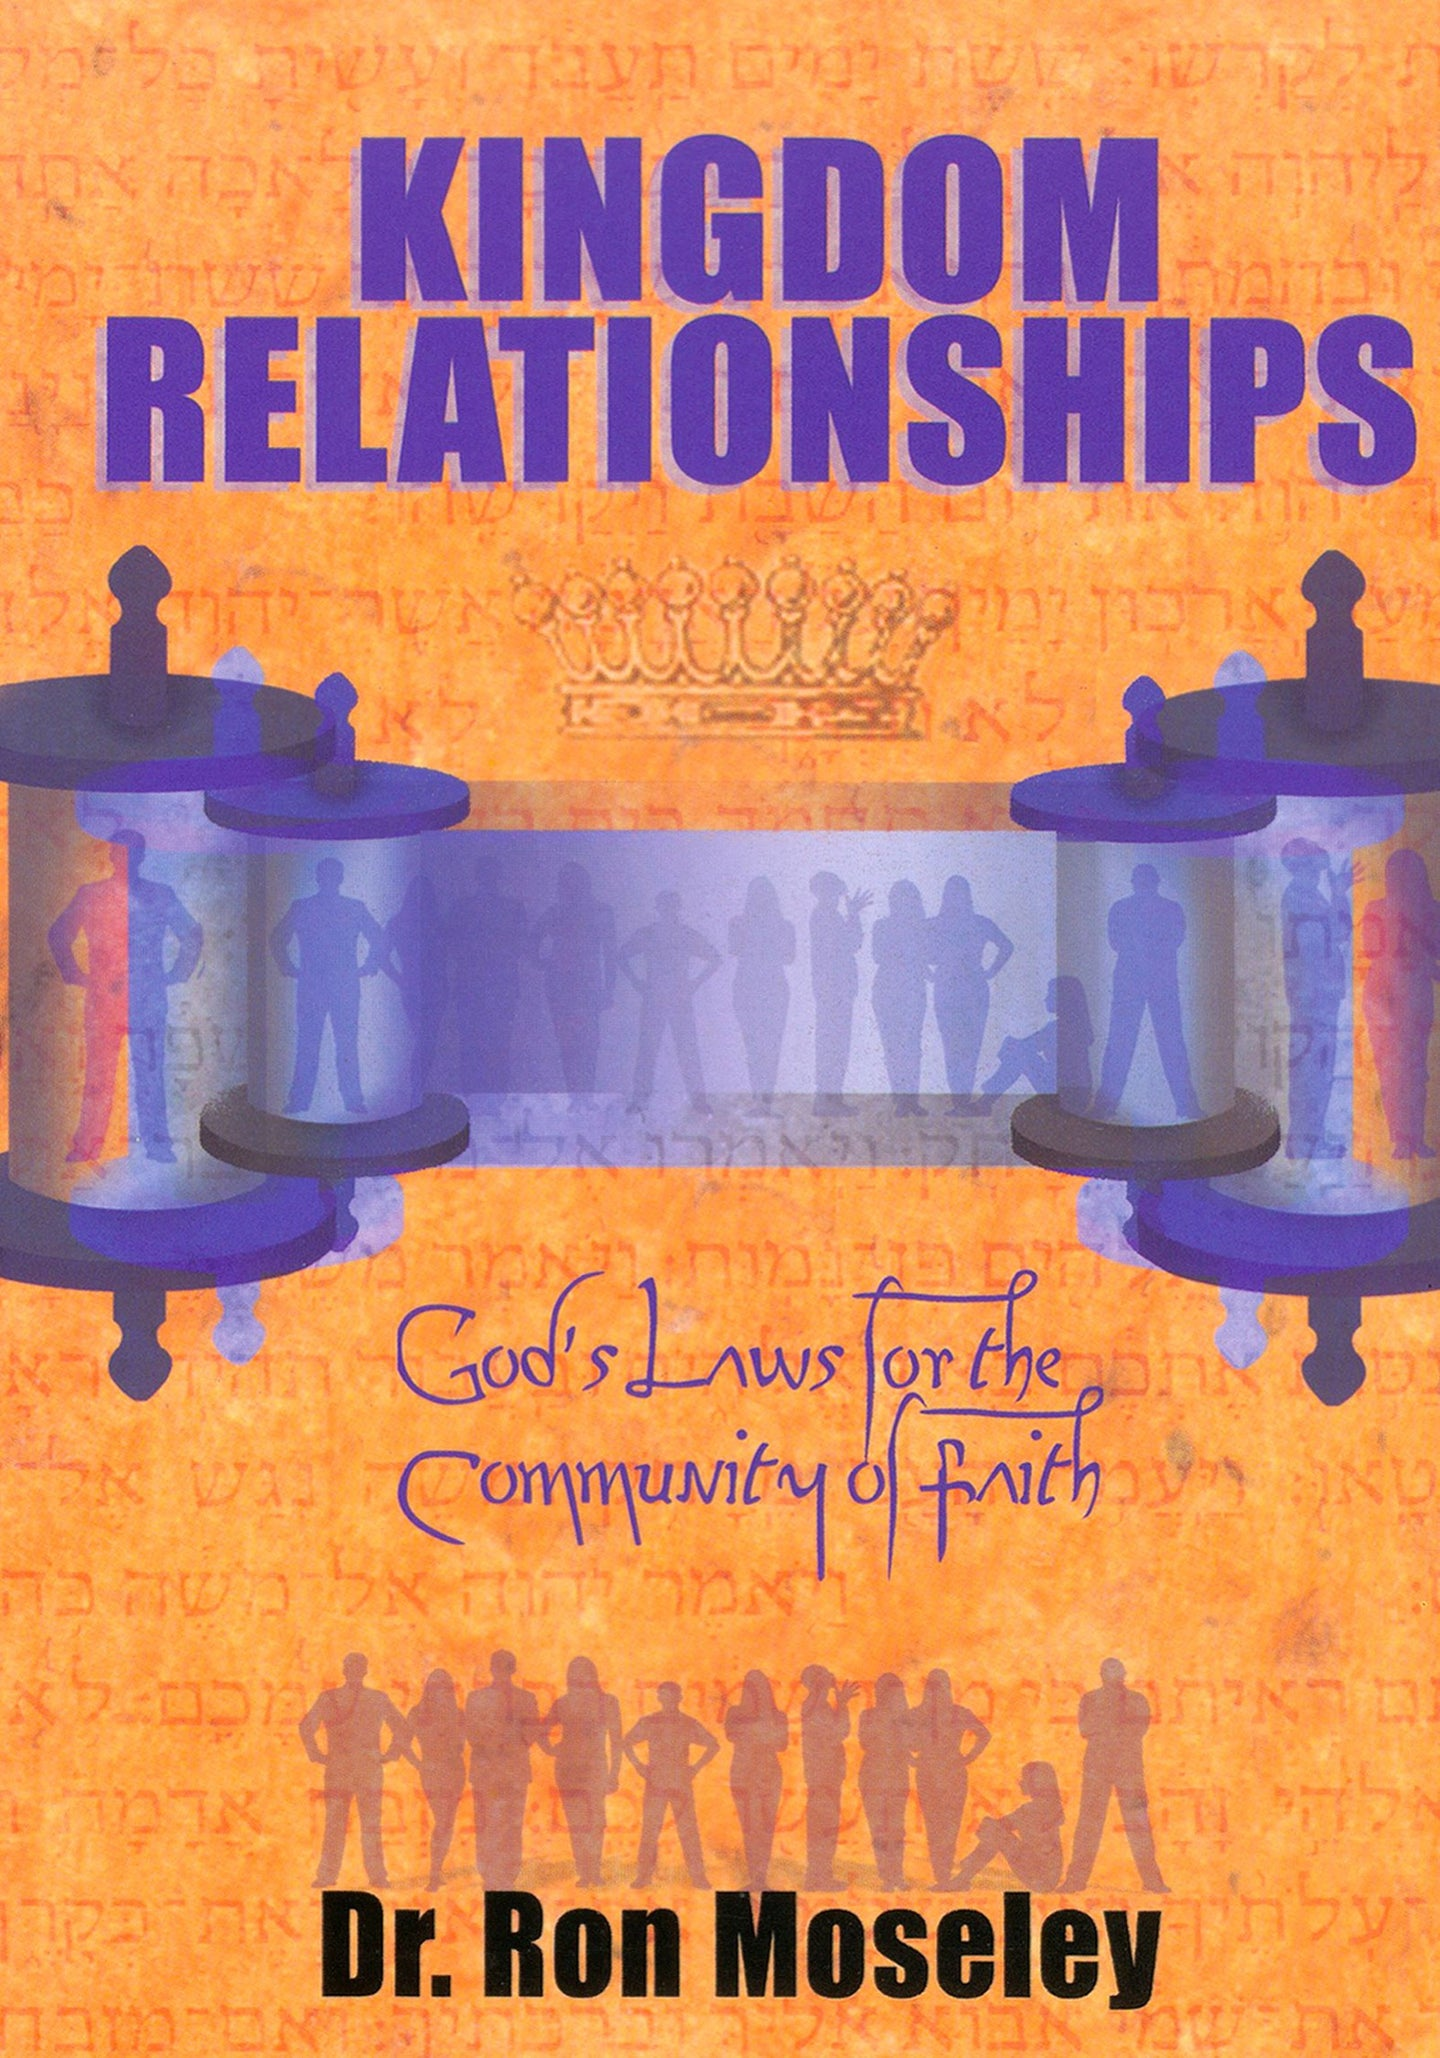 Kingdom Relationships: God's Laws for the Community of Faith by Dr. Ron Moseley